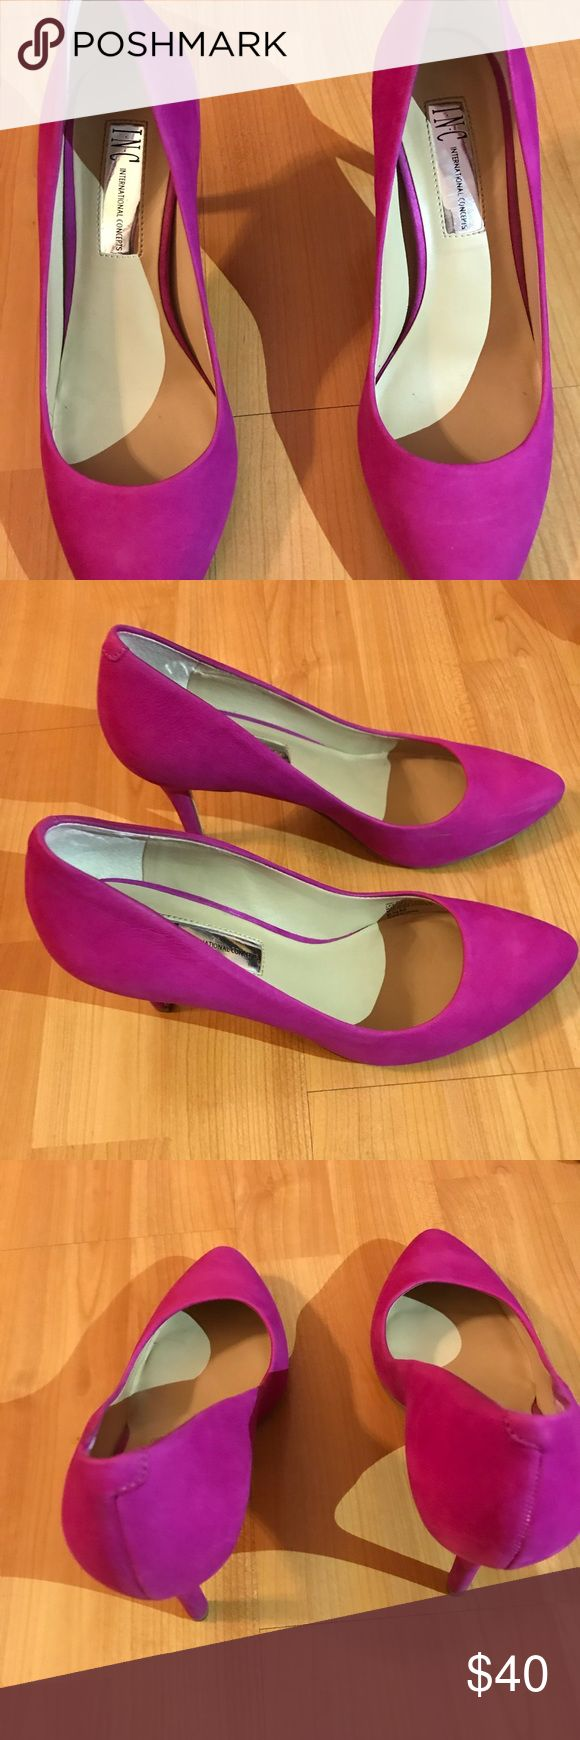 INC Zitah Pointed Toe Pumps, Created for Macy's INC International Concepts Women's Zitah Pointed Toe Pumps, Created for Macy's Size: 6.5 Color:  Deep Fuchsia Suede Worn once but a little tight on me.  I'm more of a size 7. Comes with box. INC International Concepts Shoes